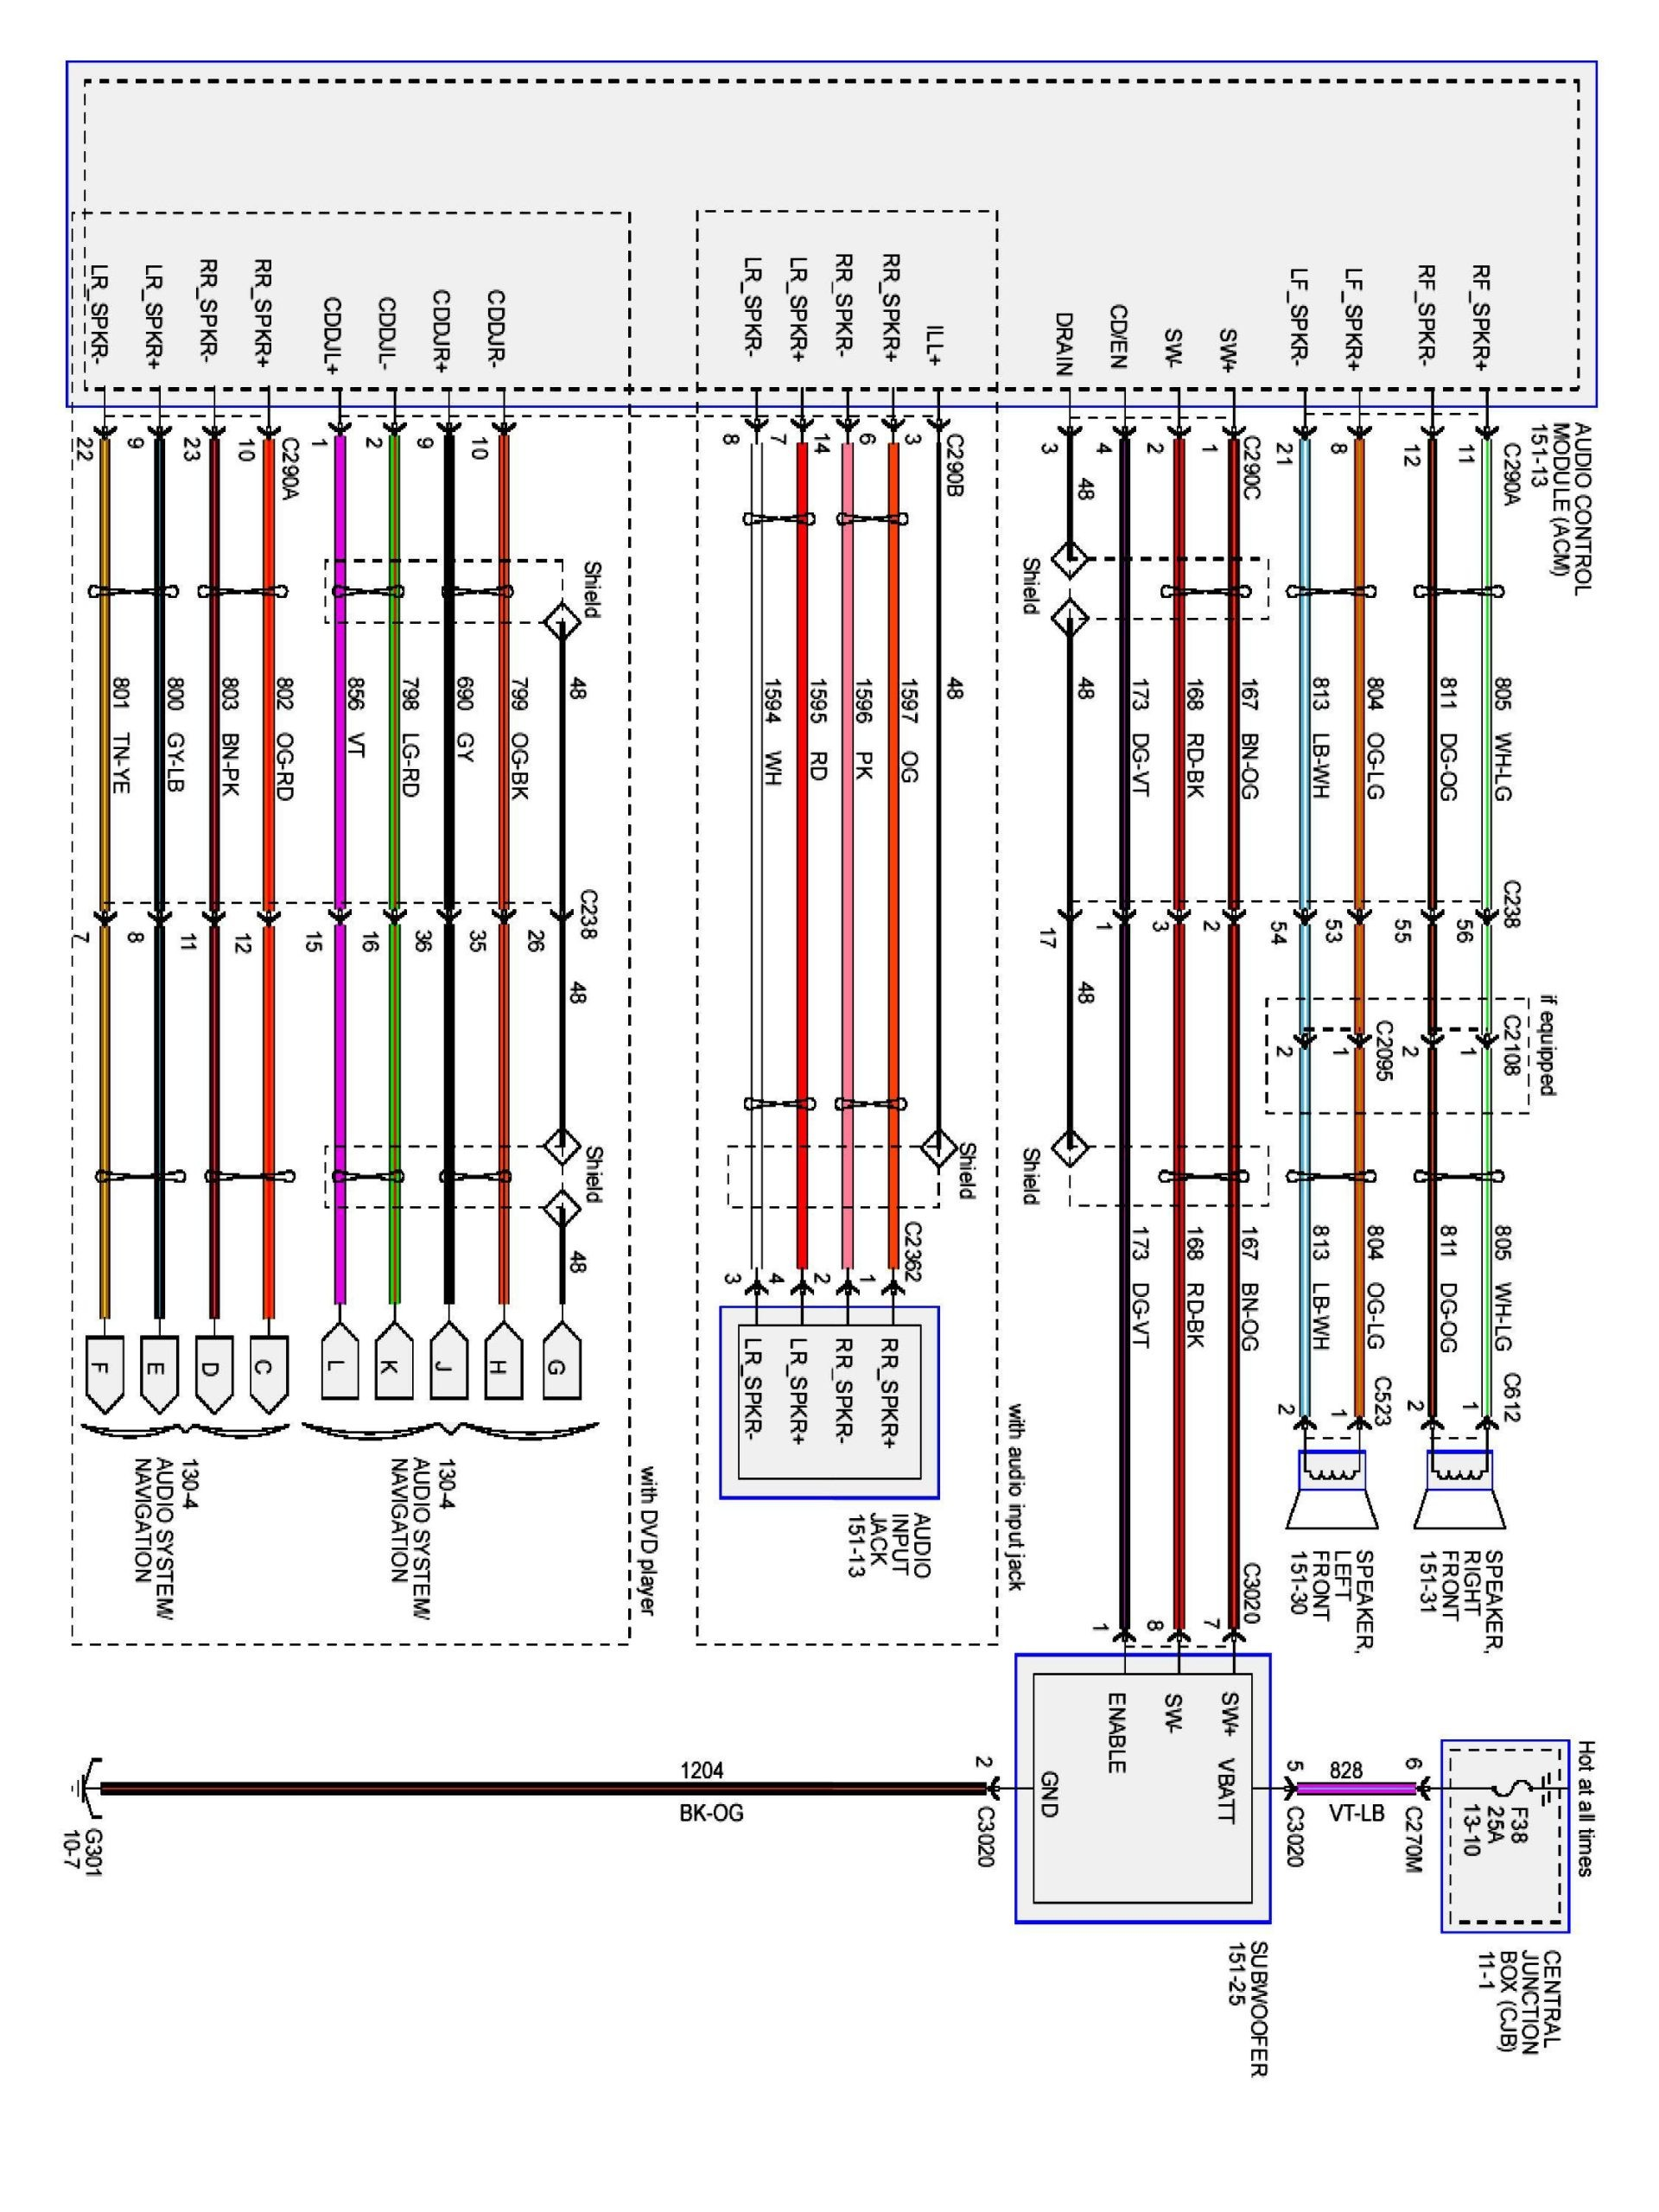 1999 ford Explorer Radio Wiring Diagram fordger Wiring Diagram Polaris Efi Thumb Explorer Spark Plug Wire Of 1999 ford Explorer Radio Wiring Diagram